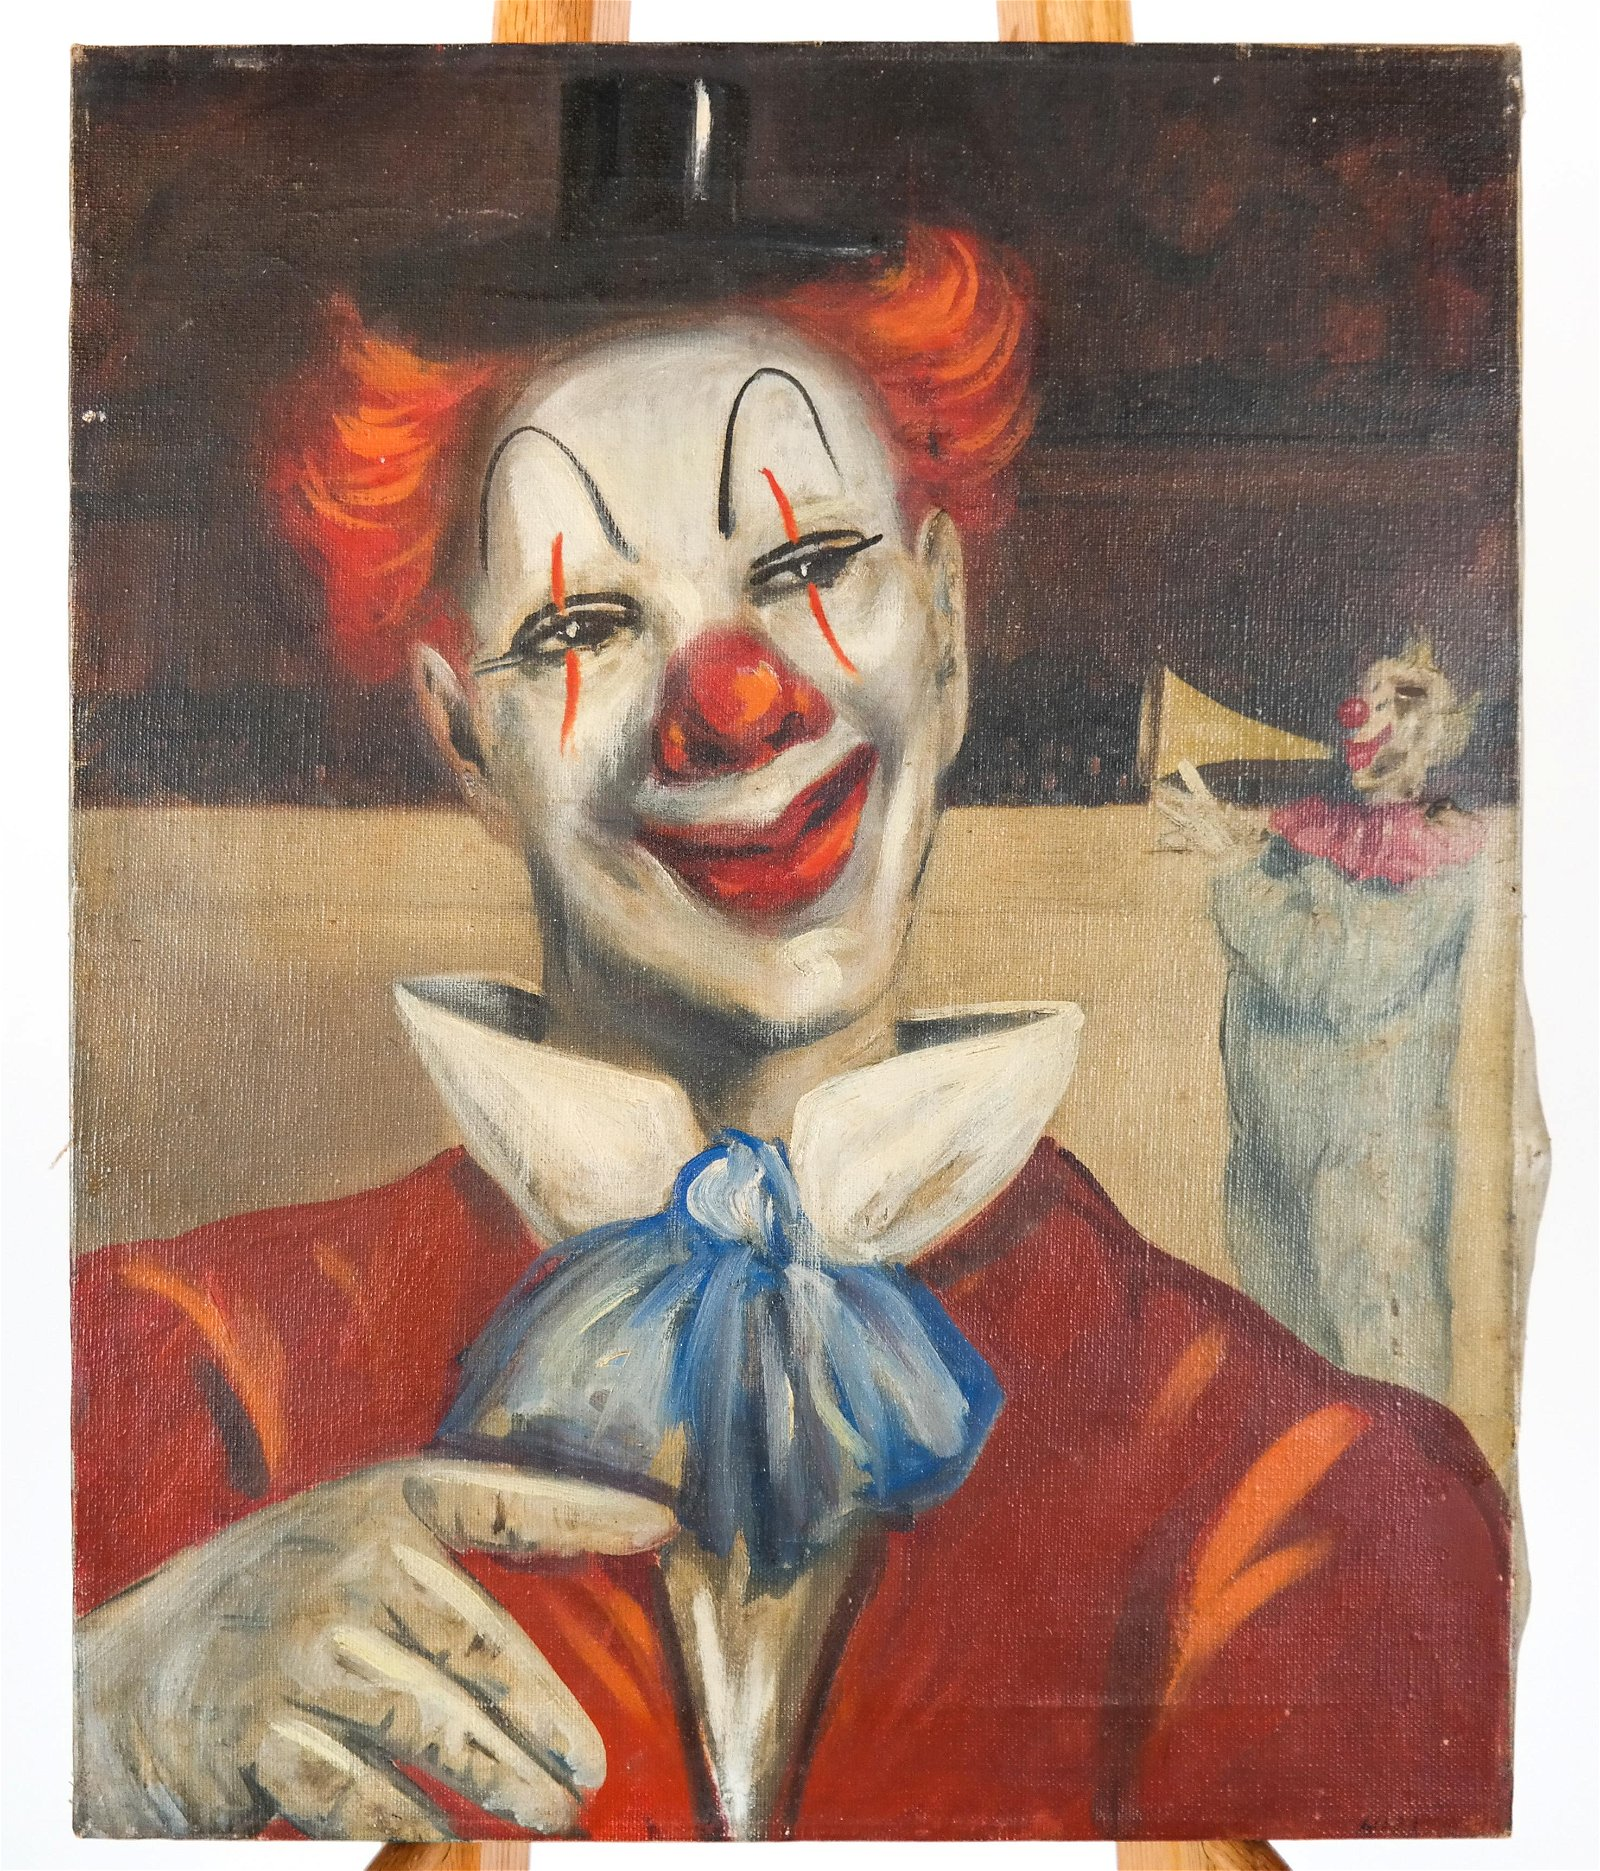 Portrait of Two Circus Clowns - Oil on Canvas